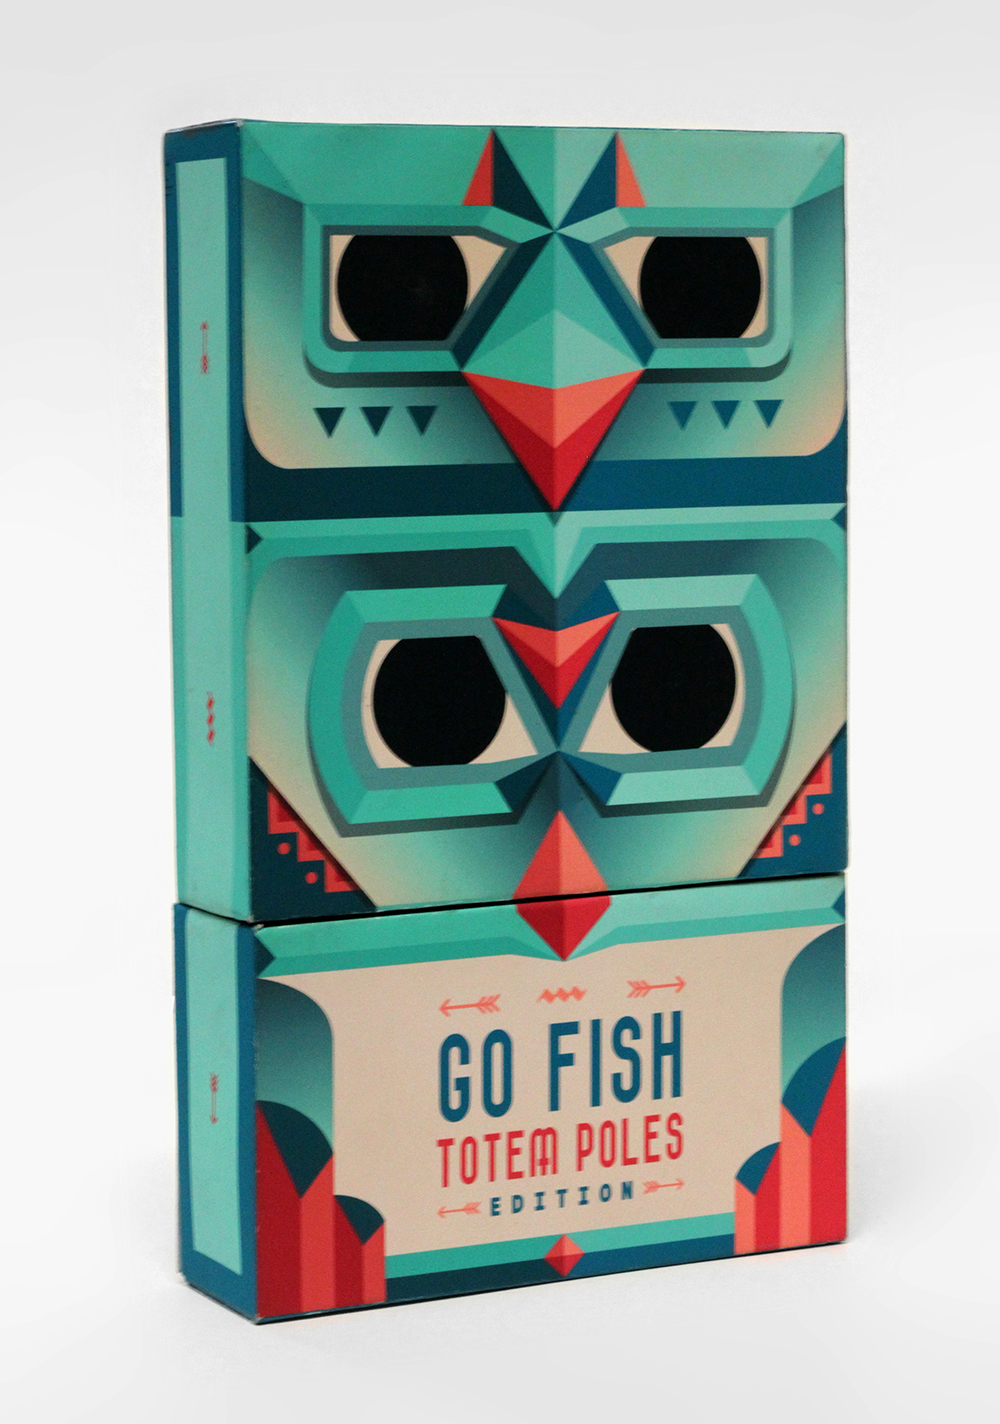 Go-Fish-Totem-Pole-Thanh-Nguyen-design-box-front